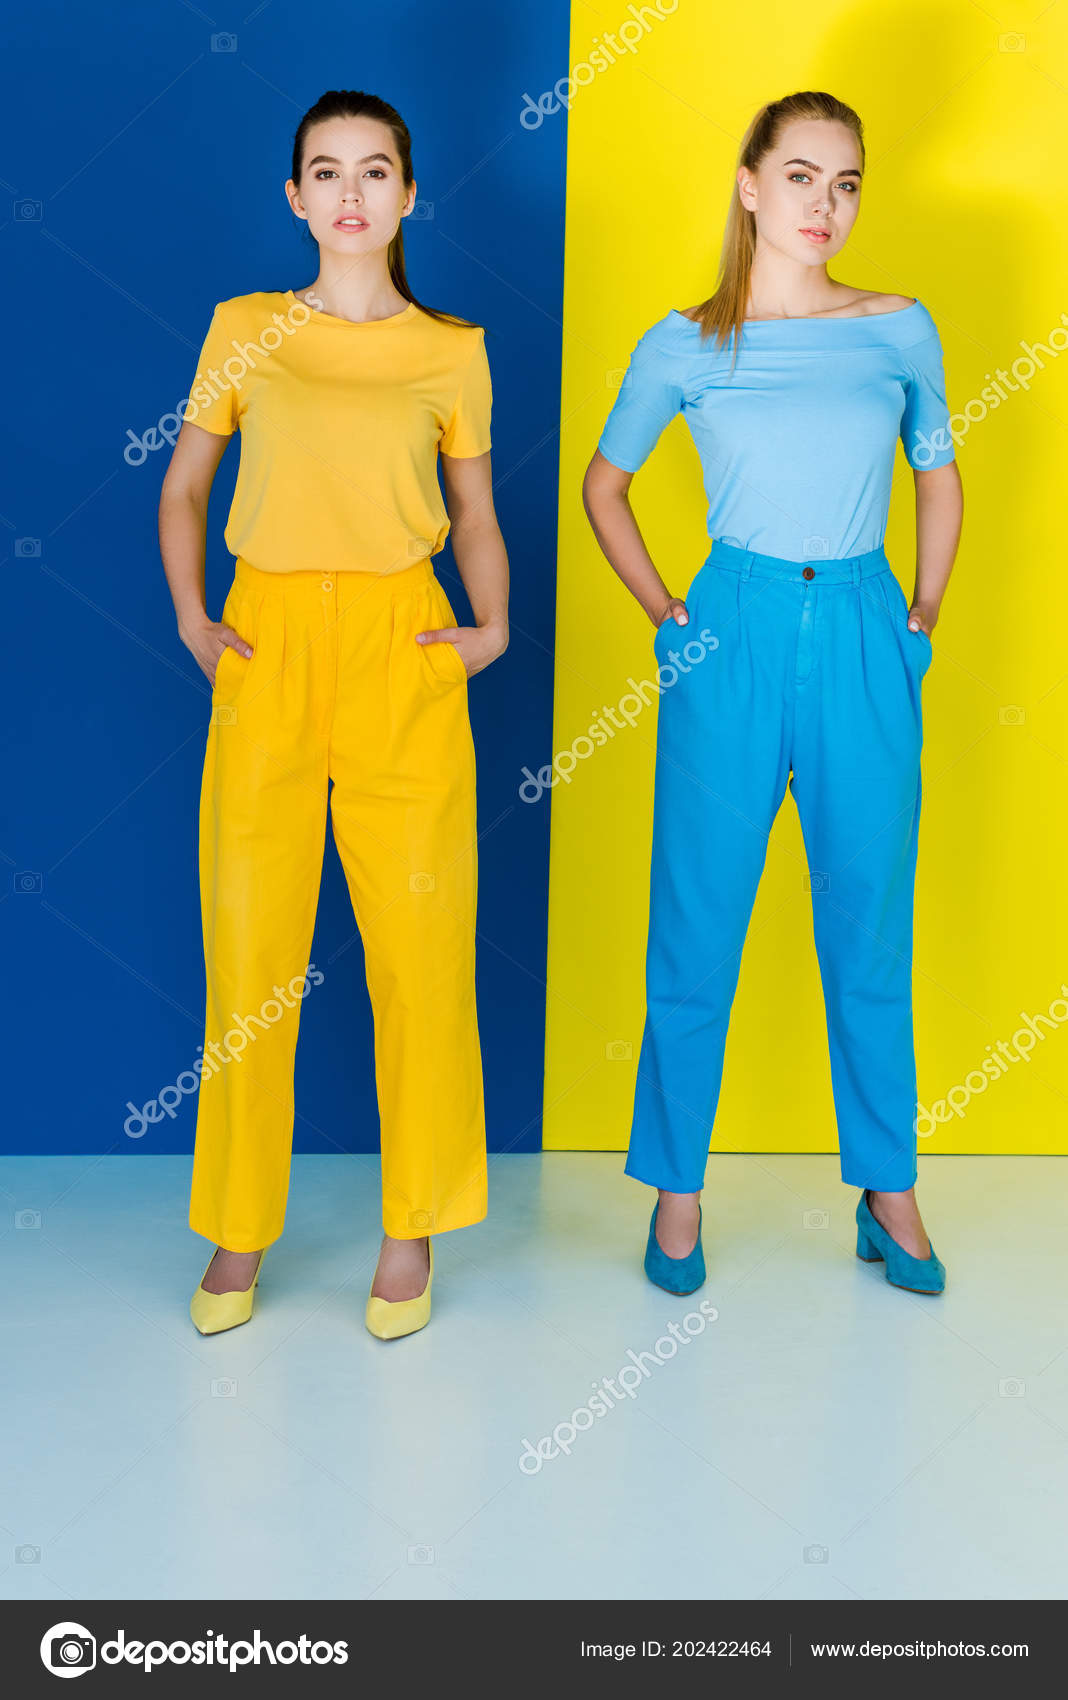 Blue And Yellow Outfit : yellow, outfit, Attractive, Young, Girls, Yellow, Outfits, Posing, Background, Stock, Photo, IgorVetushko, #202422464